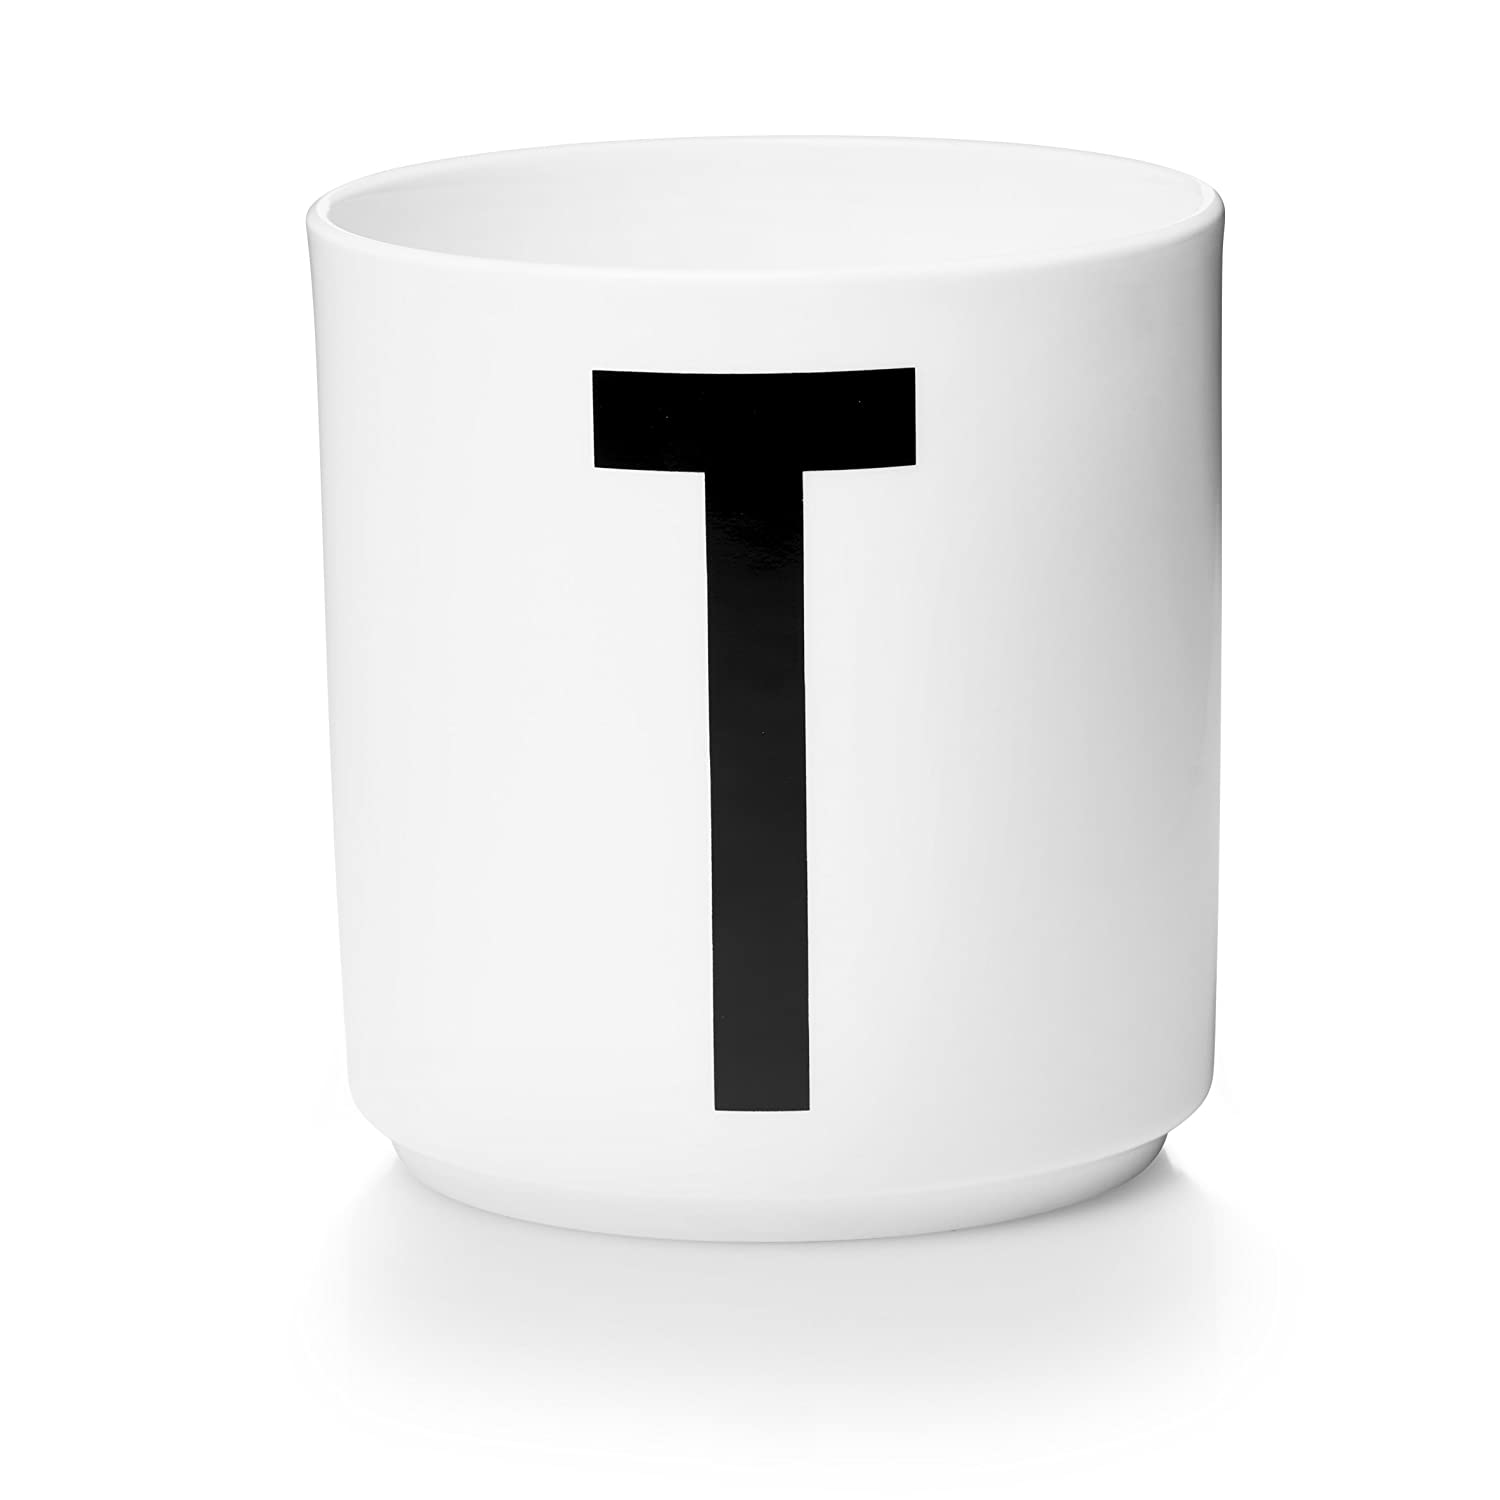 DESIGN LETTERS Letter S Fine Bone China Porcelain Cup for Home, Office & Personalised Gifts 10039 571049872019 652